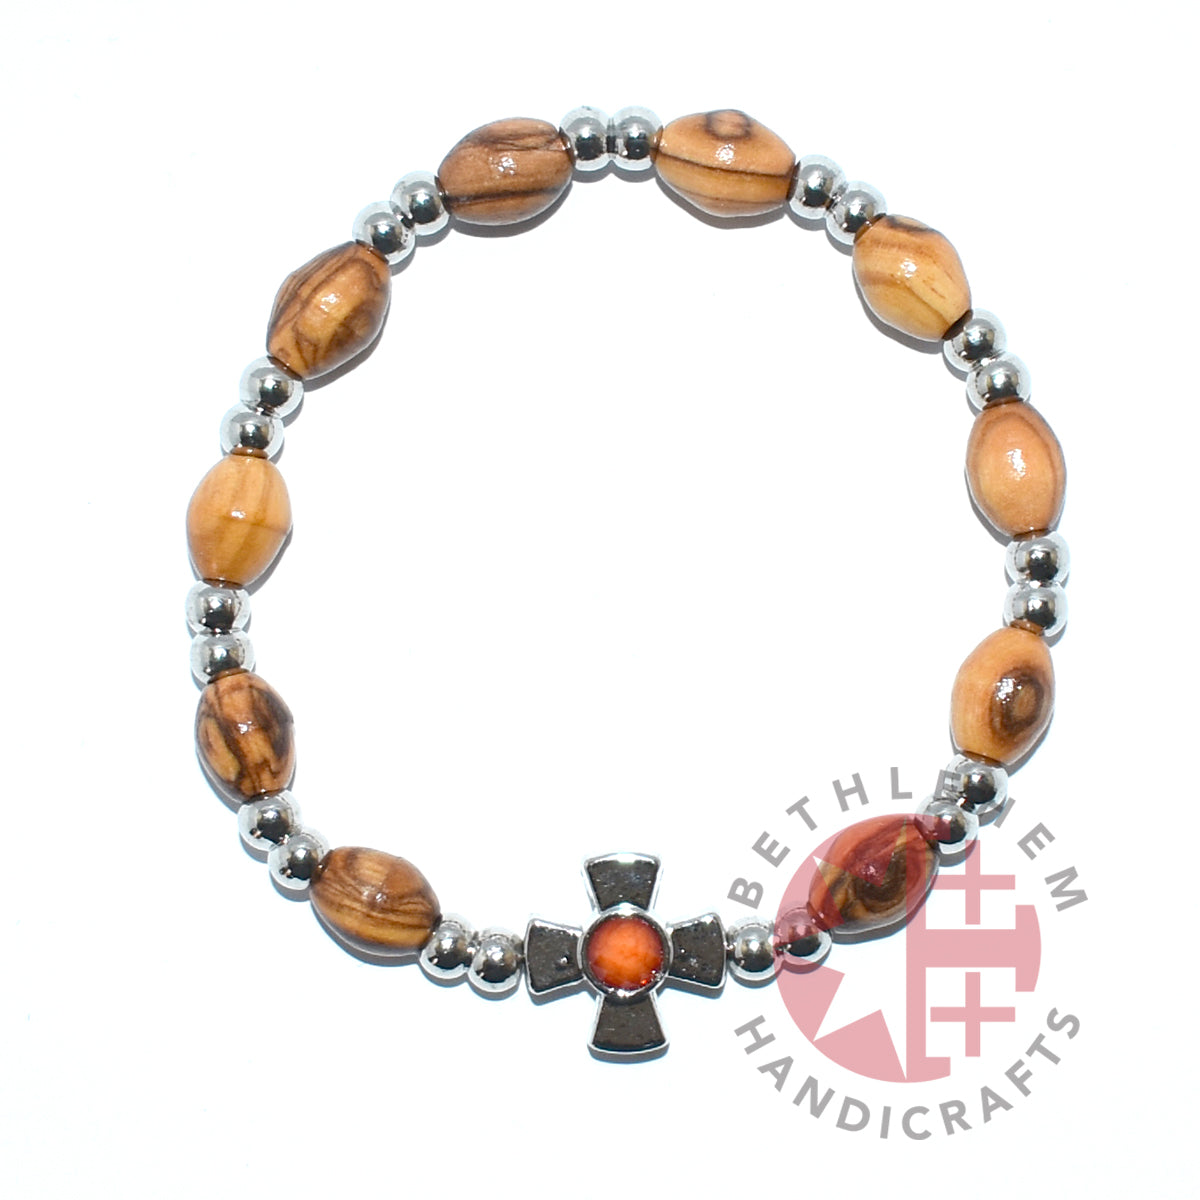 Olive Wood 6 x 9 mm oval beads Bracelet with Metal Cross